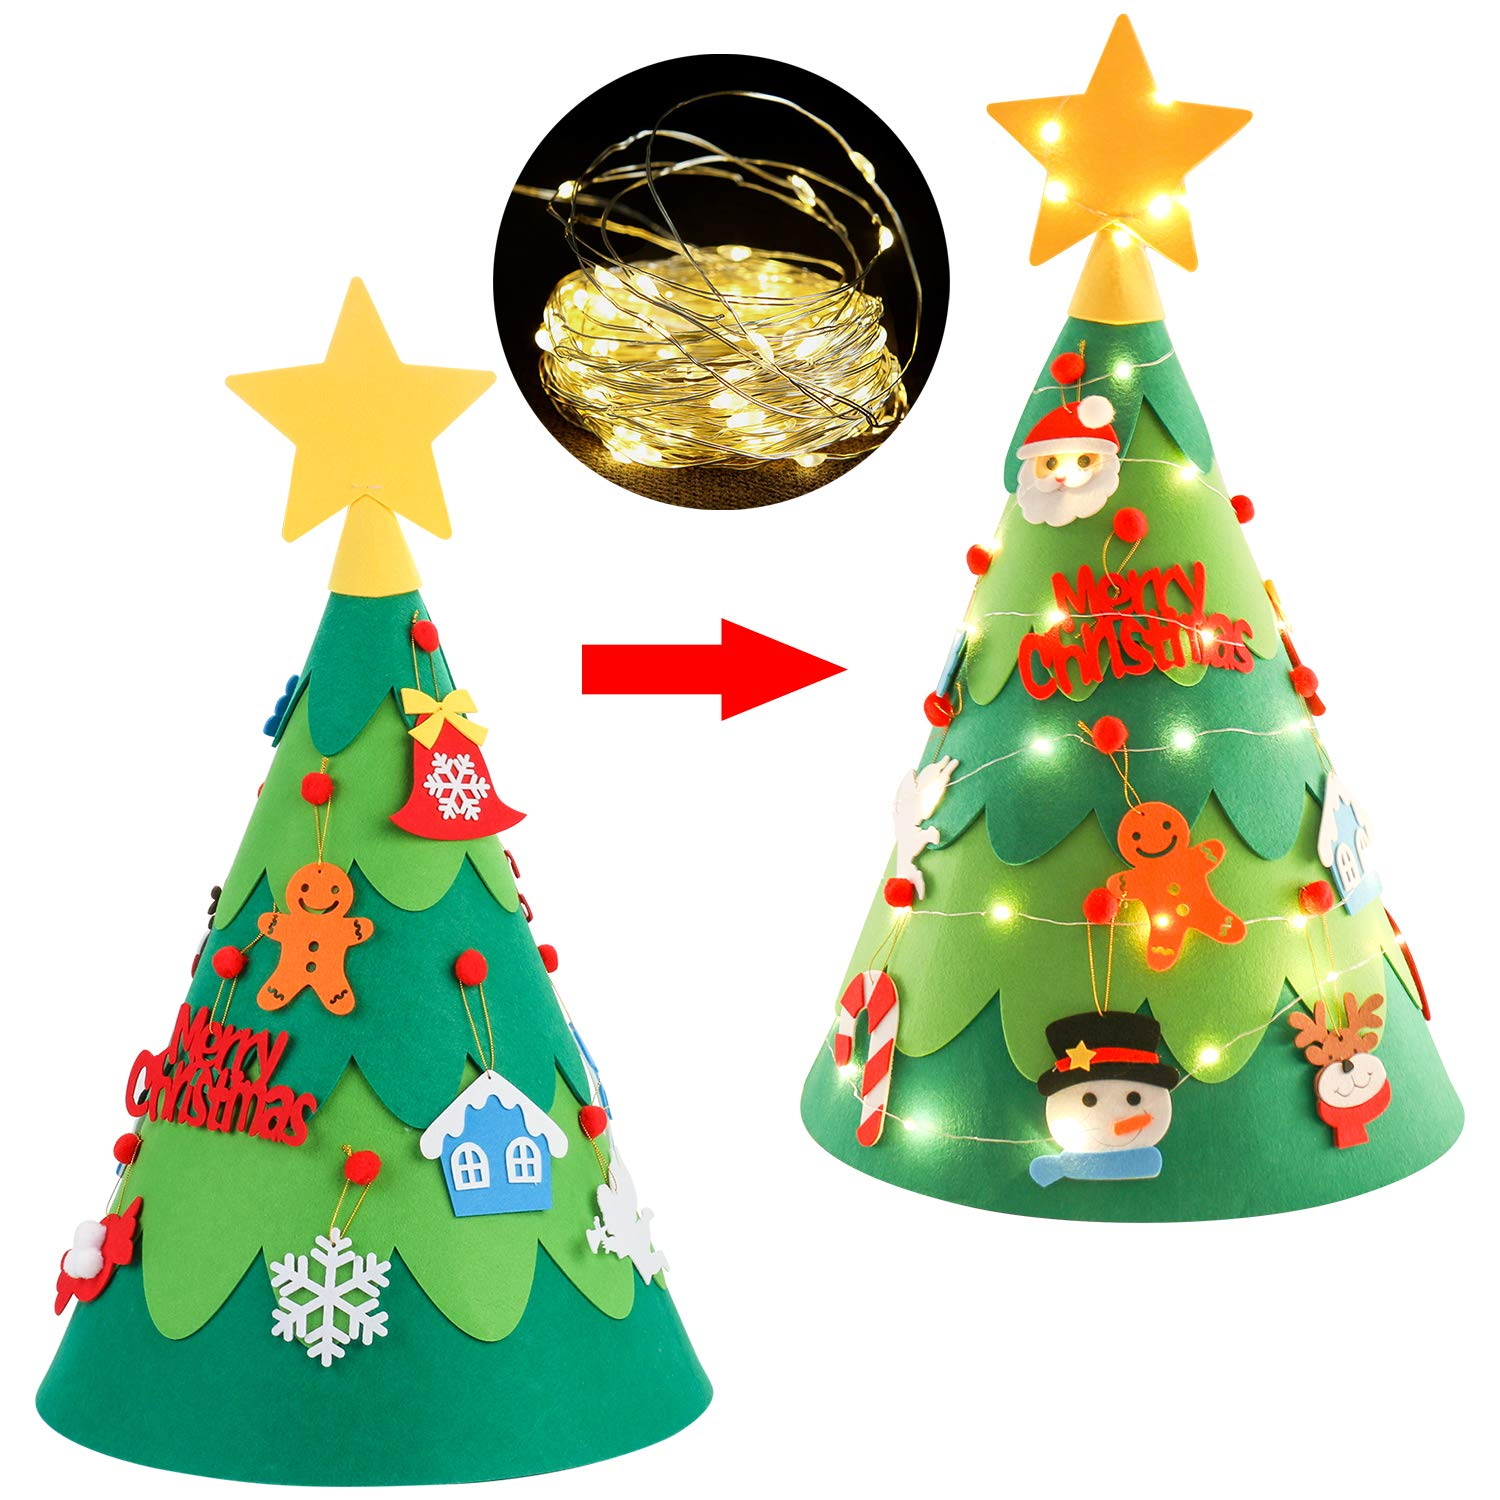 ZOYLINK Felt Christmas Tree Cute DIY Xmas Tree with Ornaments String Light for Kids